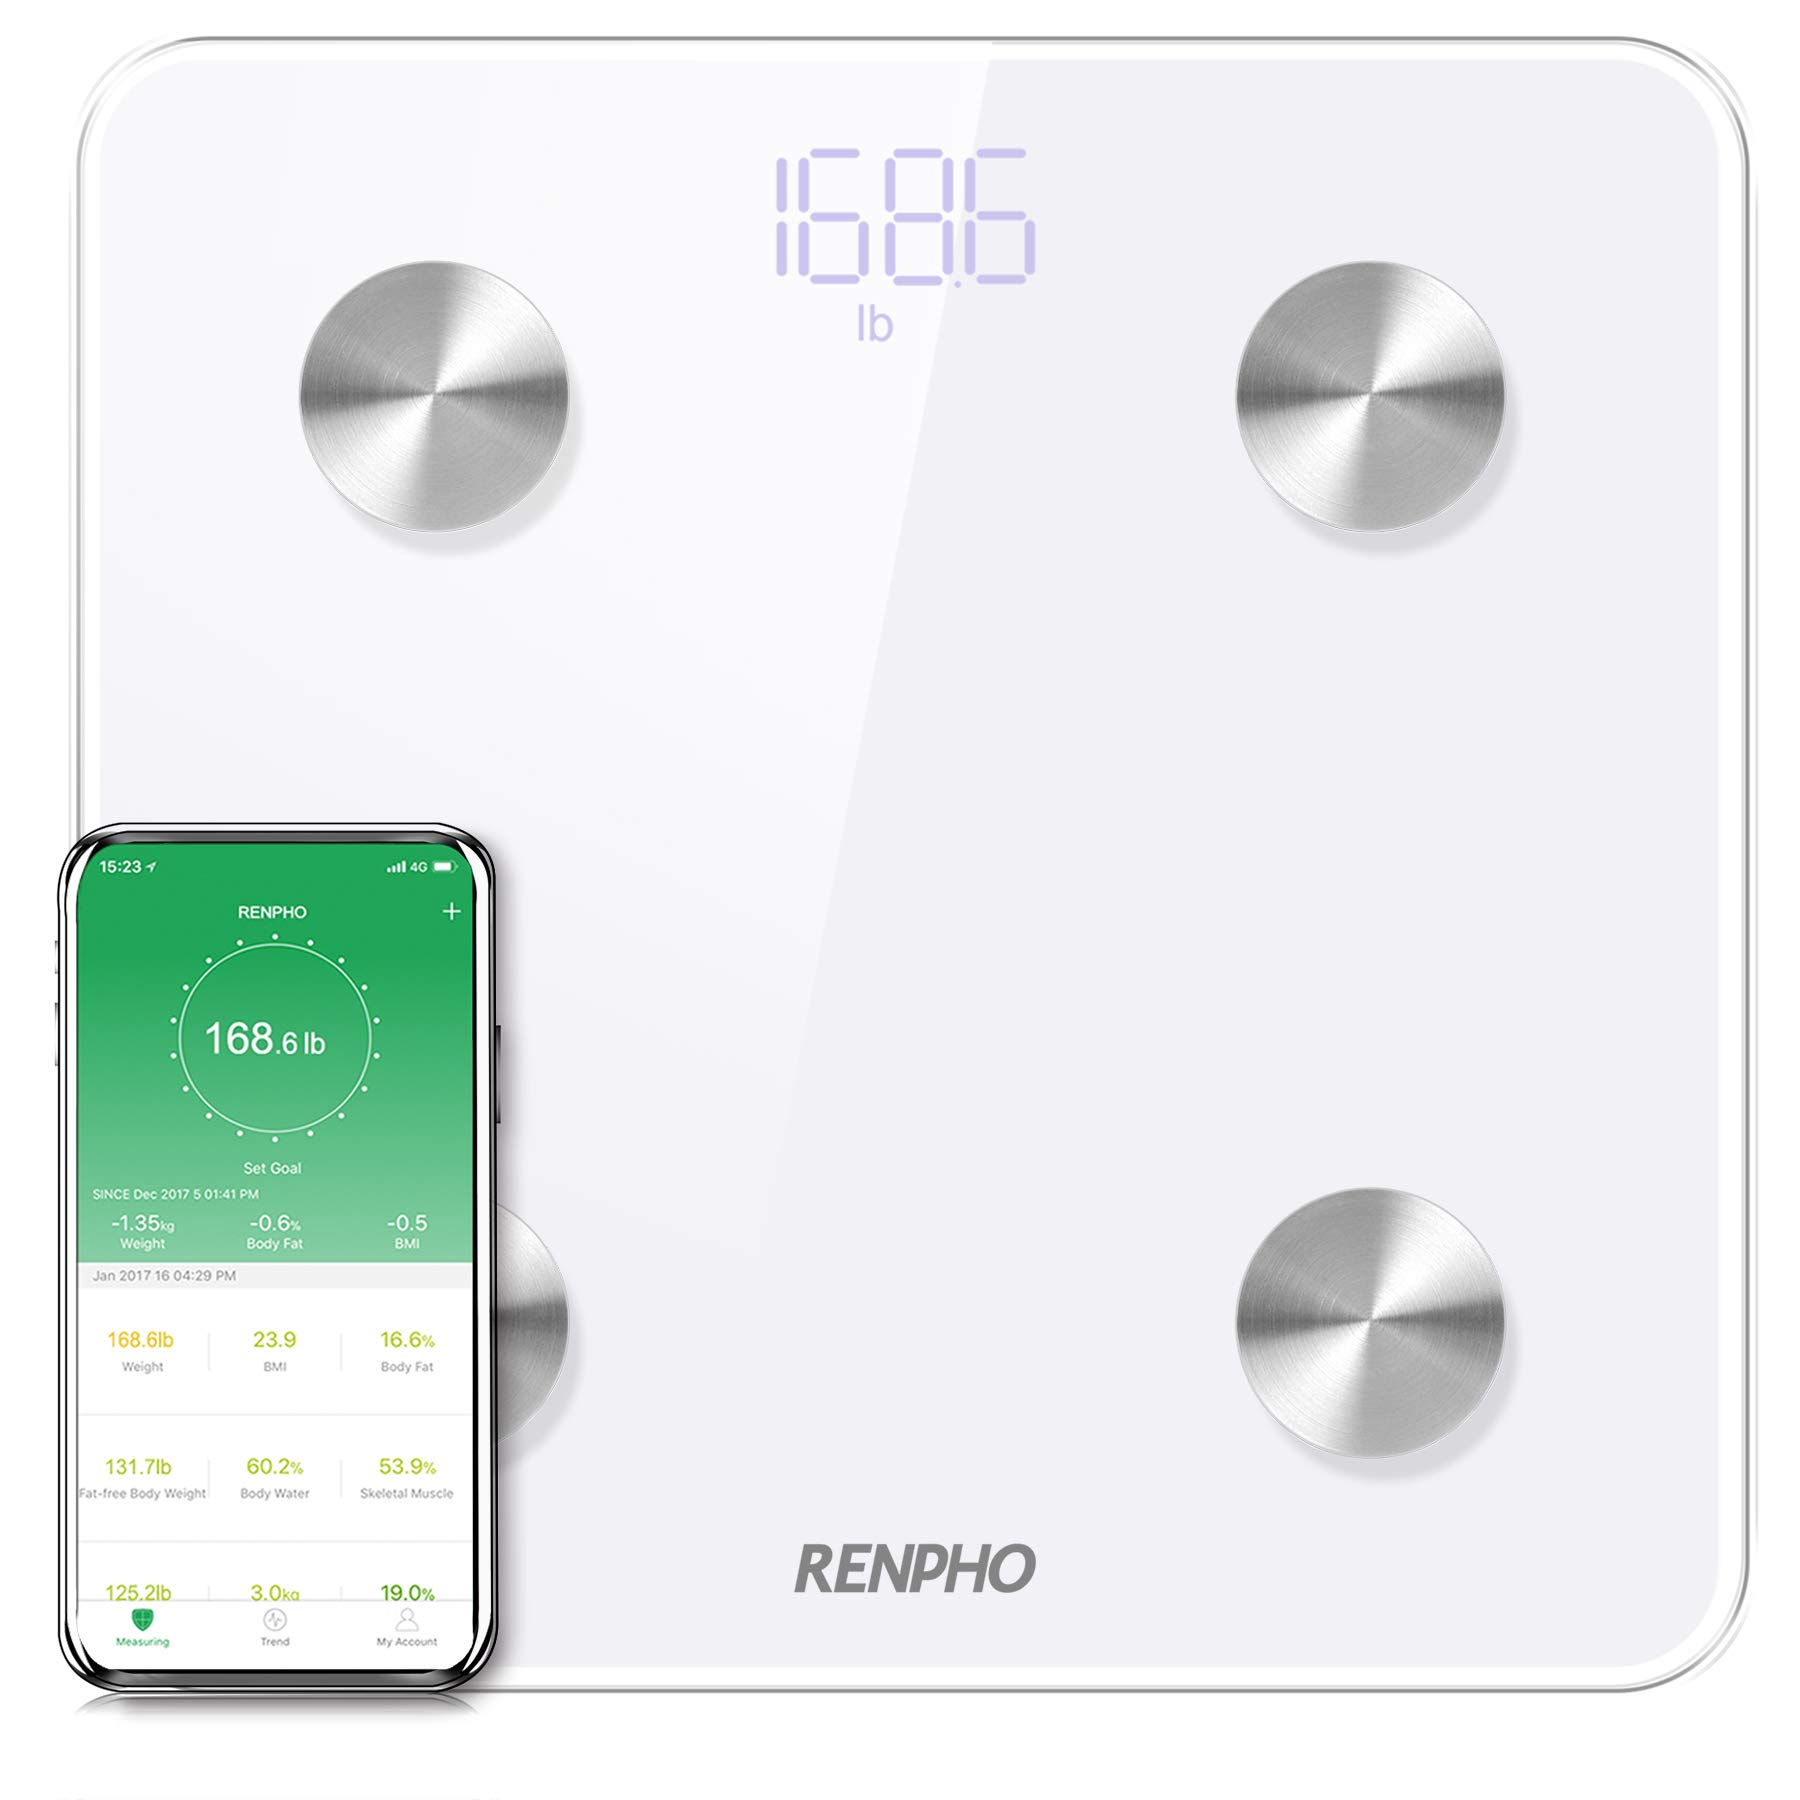 RENPHO Bluetooth Body Fat Scale Smart Digital Bathroom Weight BMI Scale Body Composition Monitor Analyzer with Smartphone App 396 lbs - White by RENPHO